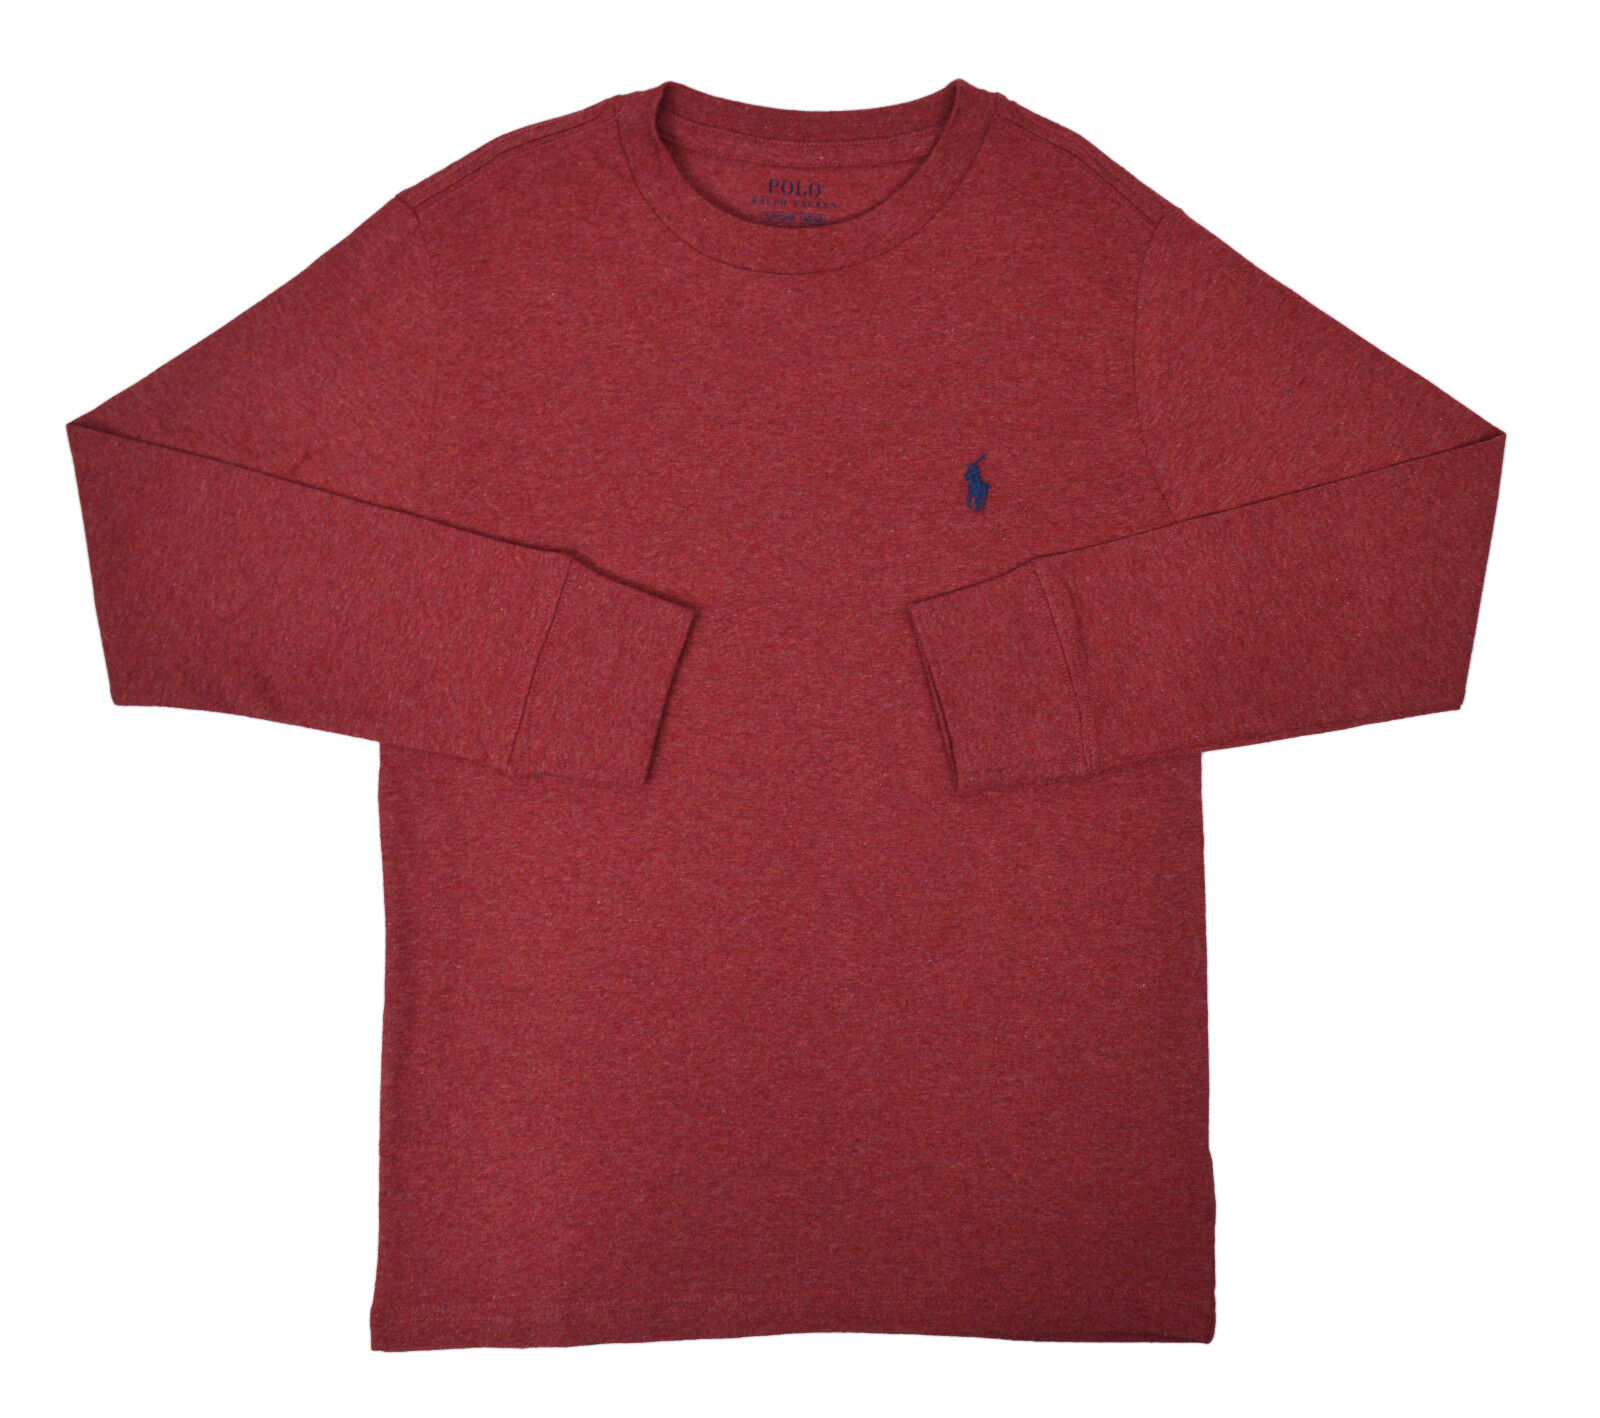 7c3c7e367021 Polo Ralph Lauren Boys Heather Red Pony Long Sleeve T-Shirt Small 8 ...